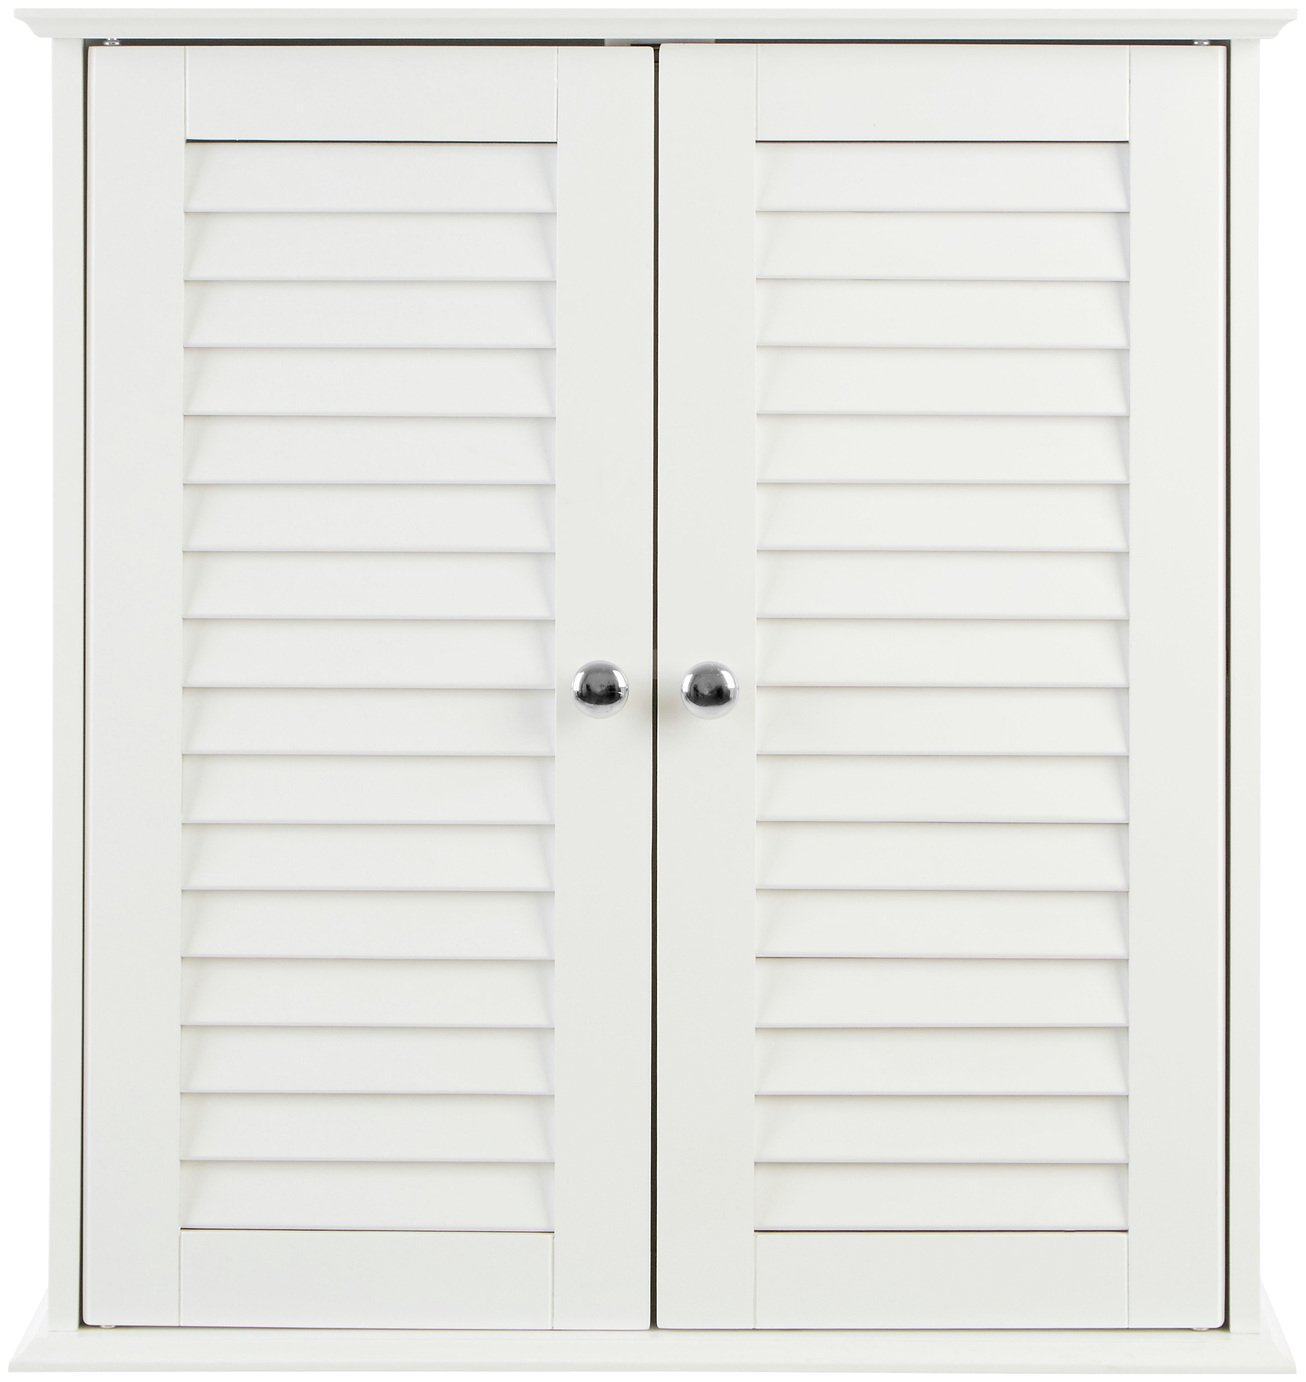 Premier Housewares Wooden Wall Cabinet - White at Argos from Premier housewares